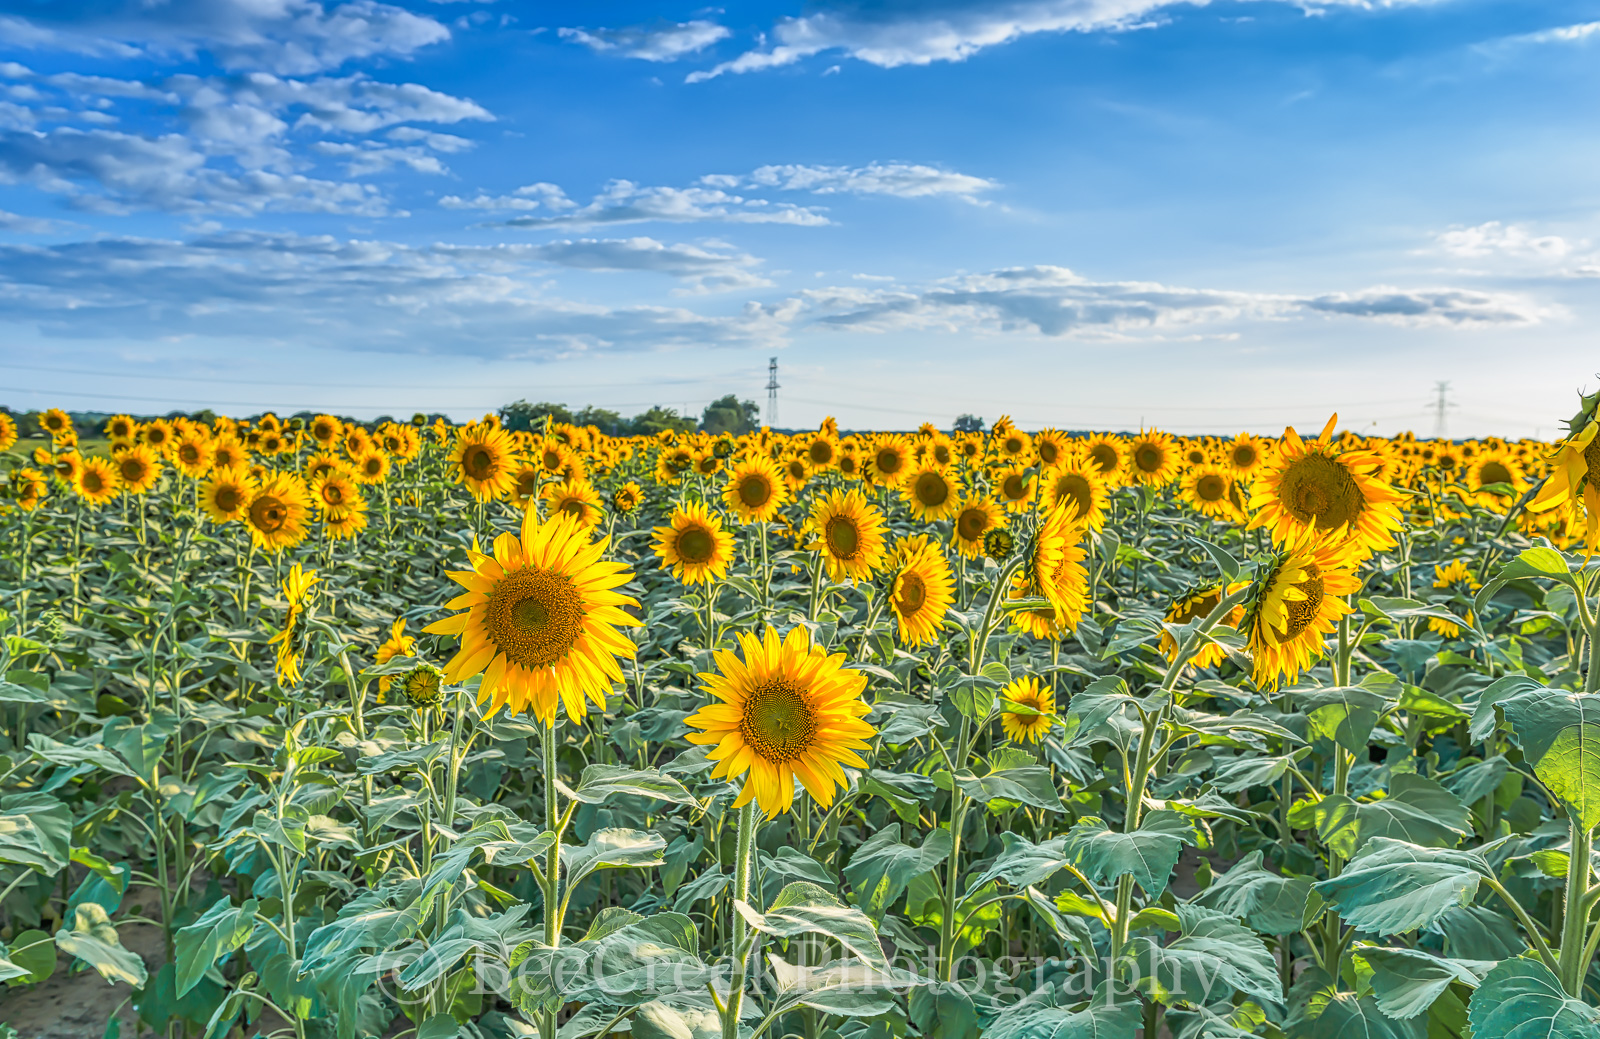 Sunflowers, fields, blue sky, clouds, leafs , tall stalks, back lit, blue sky, sun, flora, pedals, yellow, giant sunflowes, landscapes, , photo